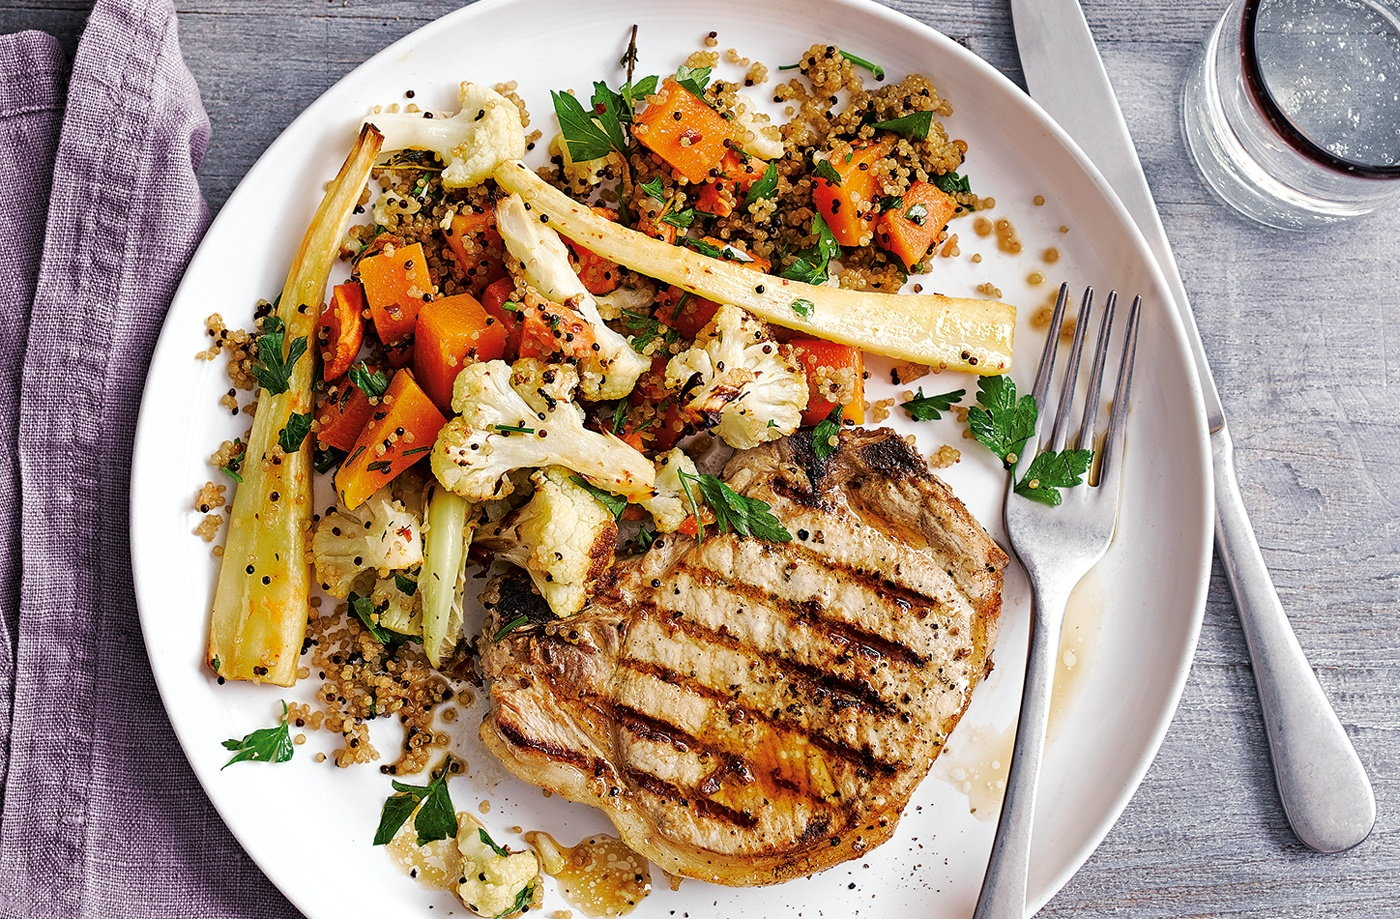 Pork chops with winter veg quinoa tesco real food for Dinner main course recipes